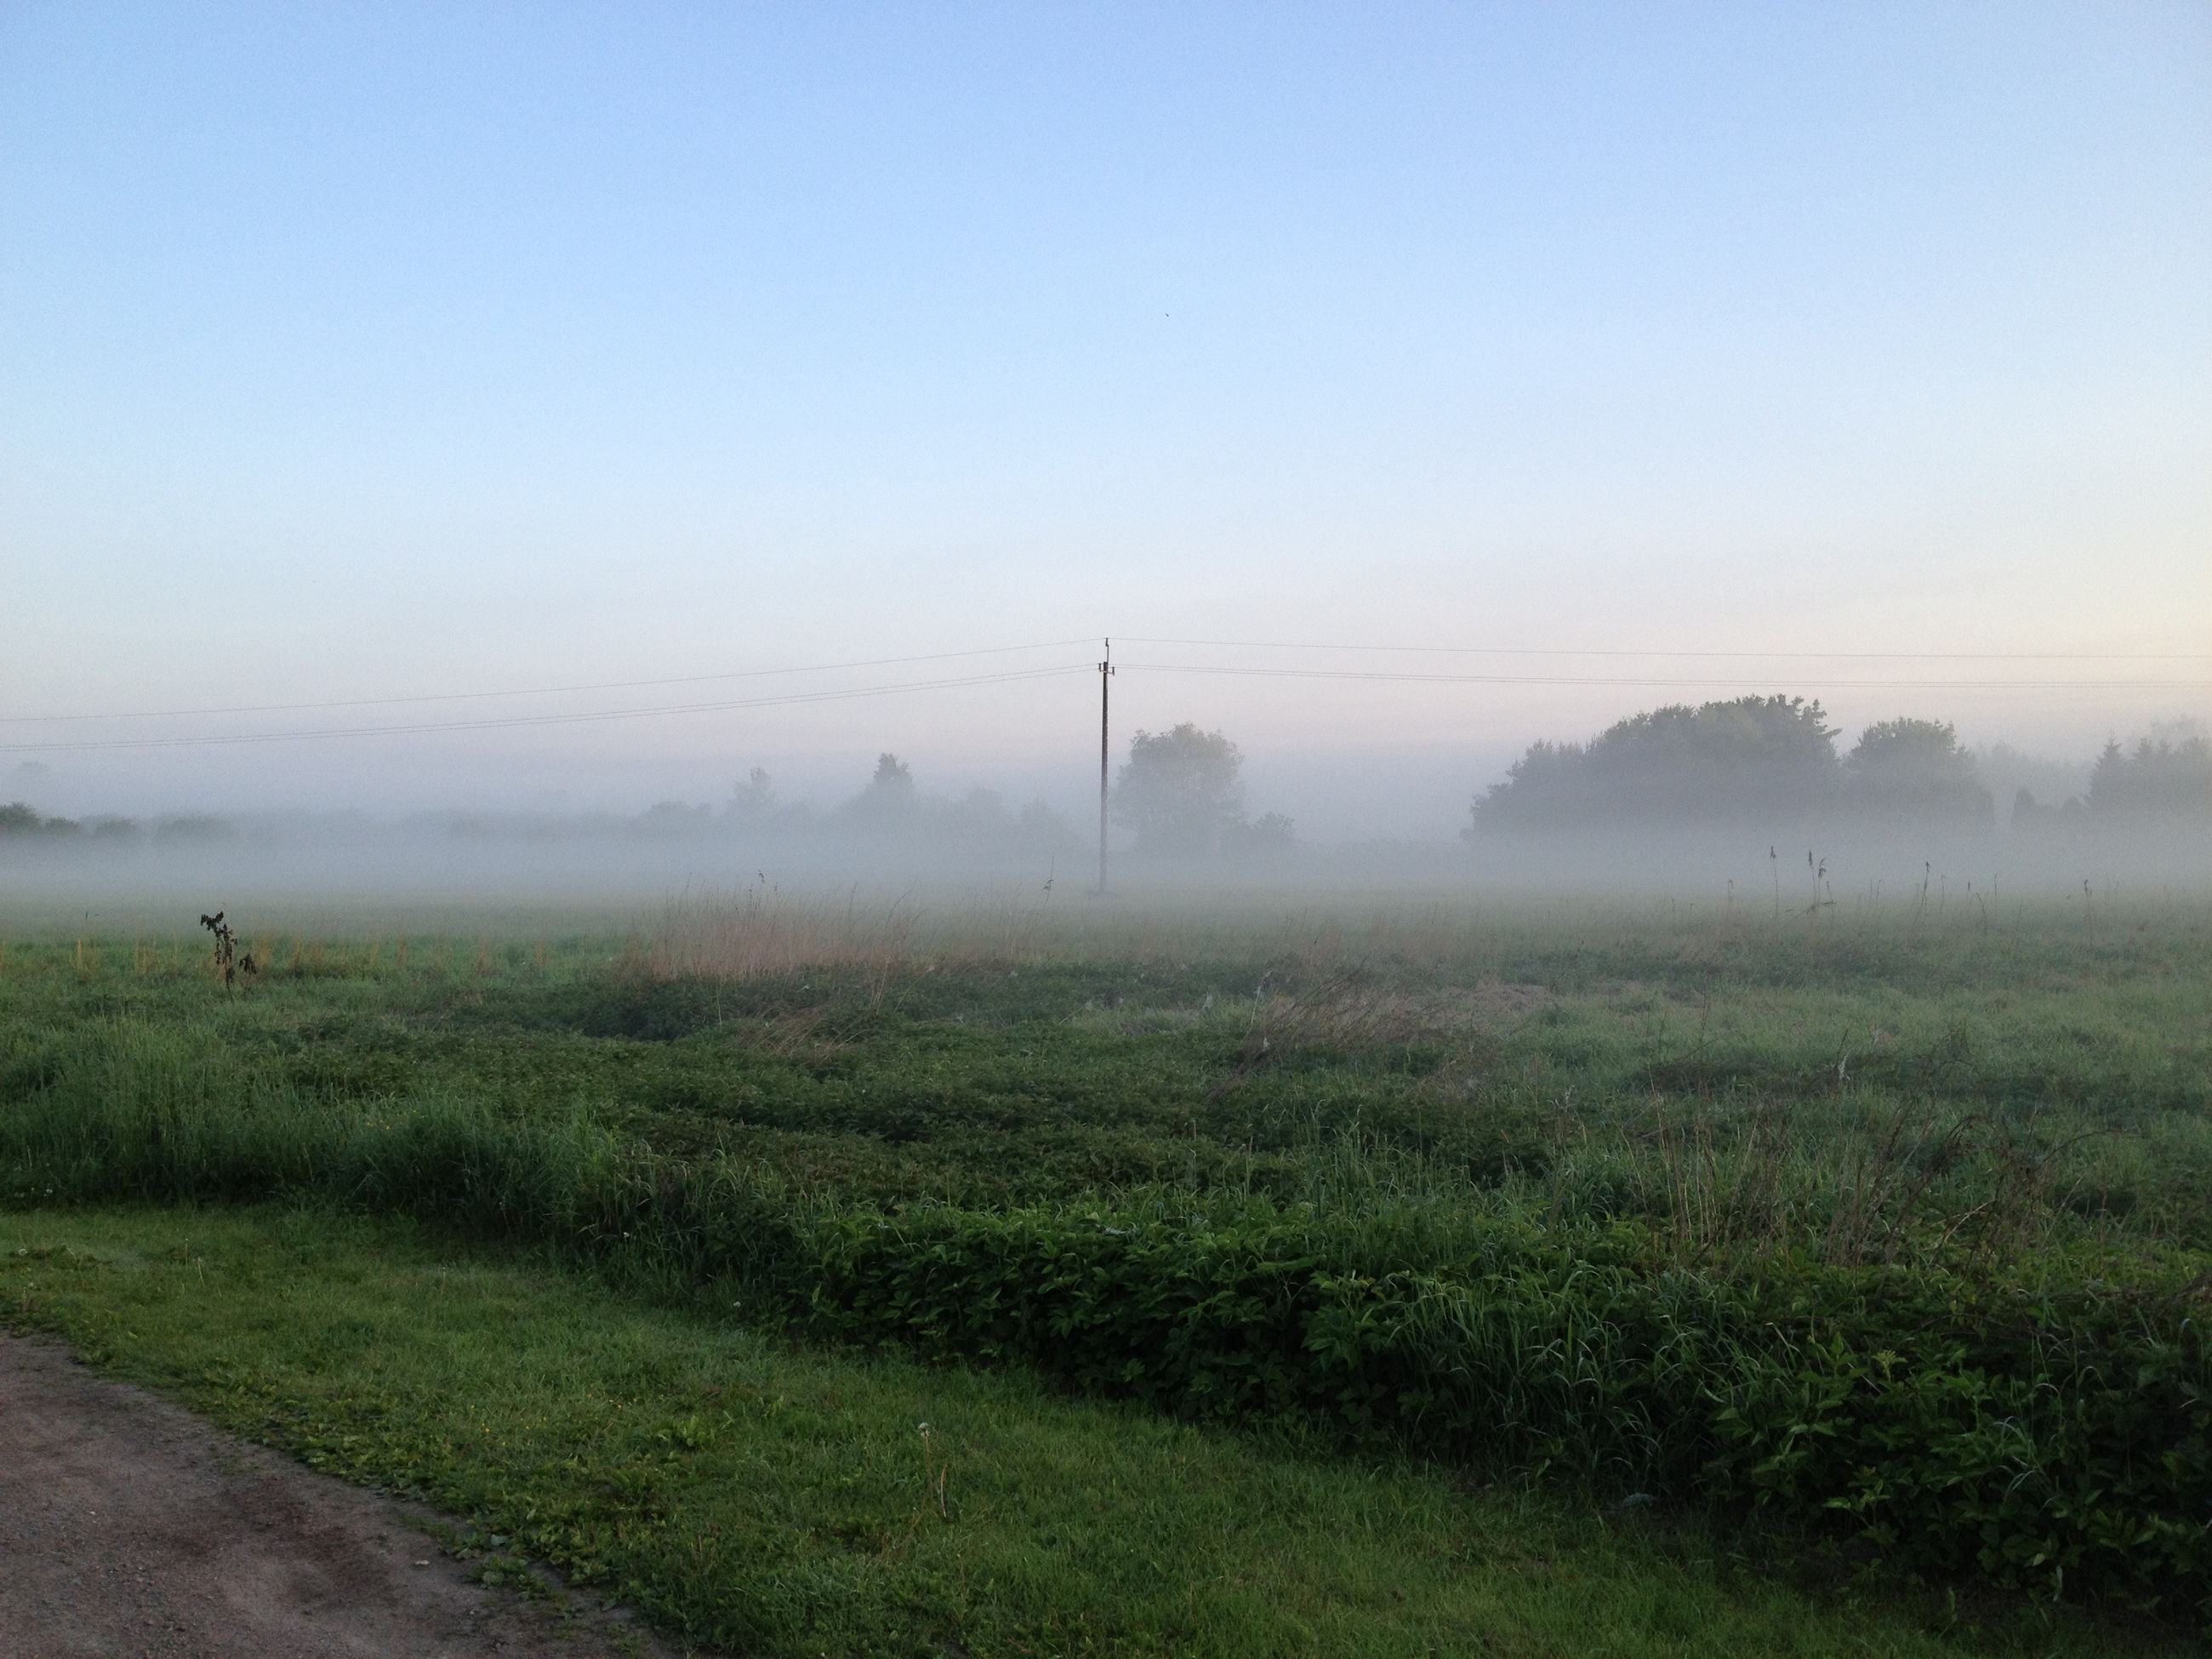 fog, field, grass, foggy, landscape, tranquility, tranquil scene, weather, grassy, nature, beauty in nature, scenics, sky, growth, copy space, green color, tree, no people, rural scene